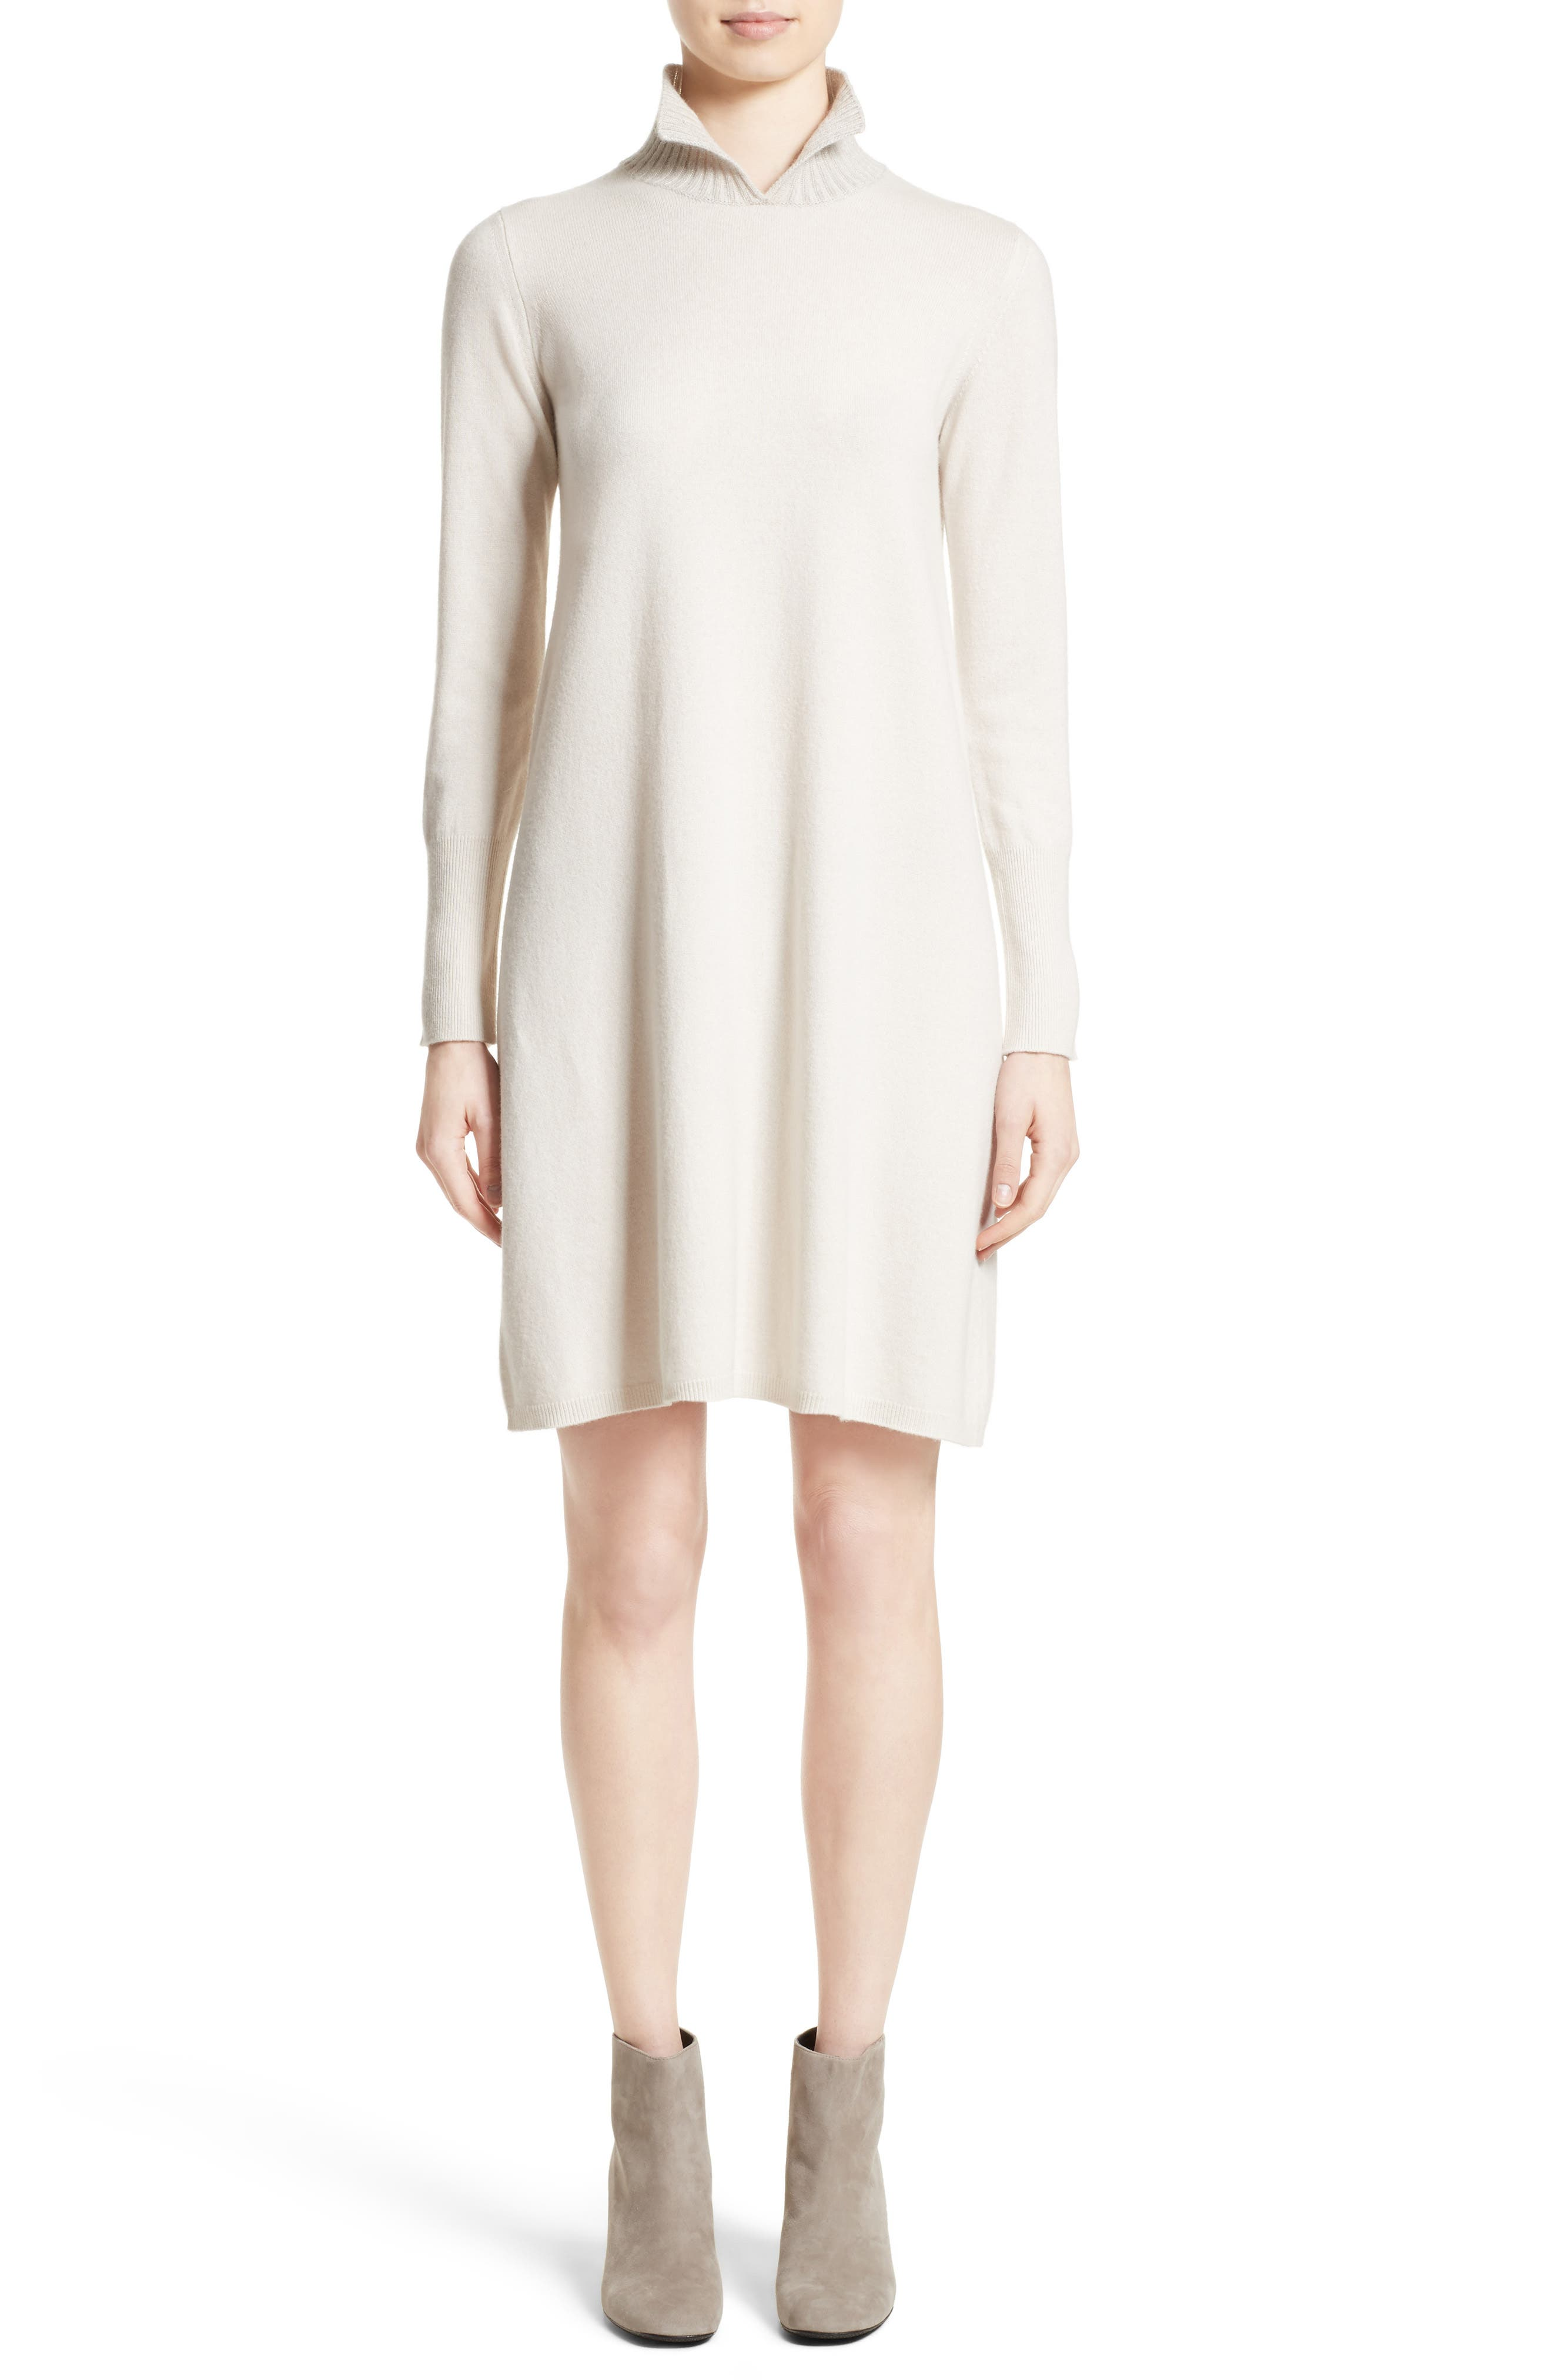 Fabiana Filippi Wool, Silk & Cashmere Knit Dress